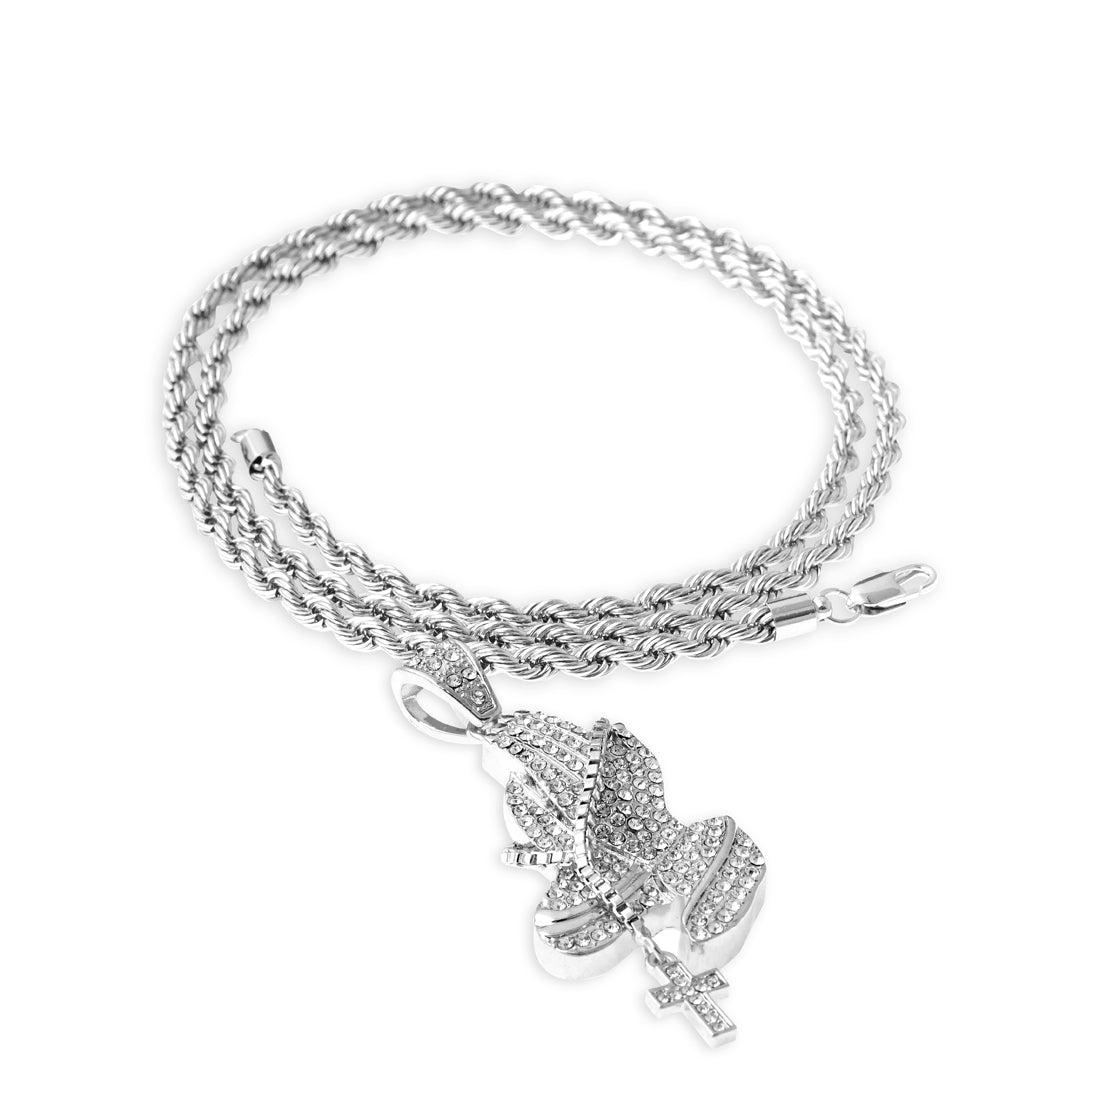 SILVER Praying Hands Cross Pendant Necklace - URBANCREWS